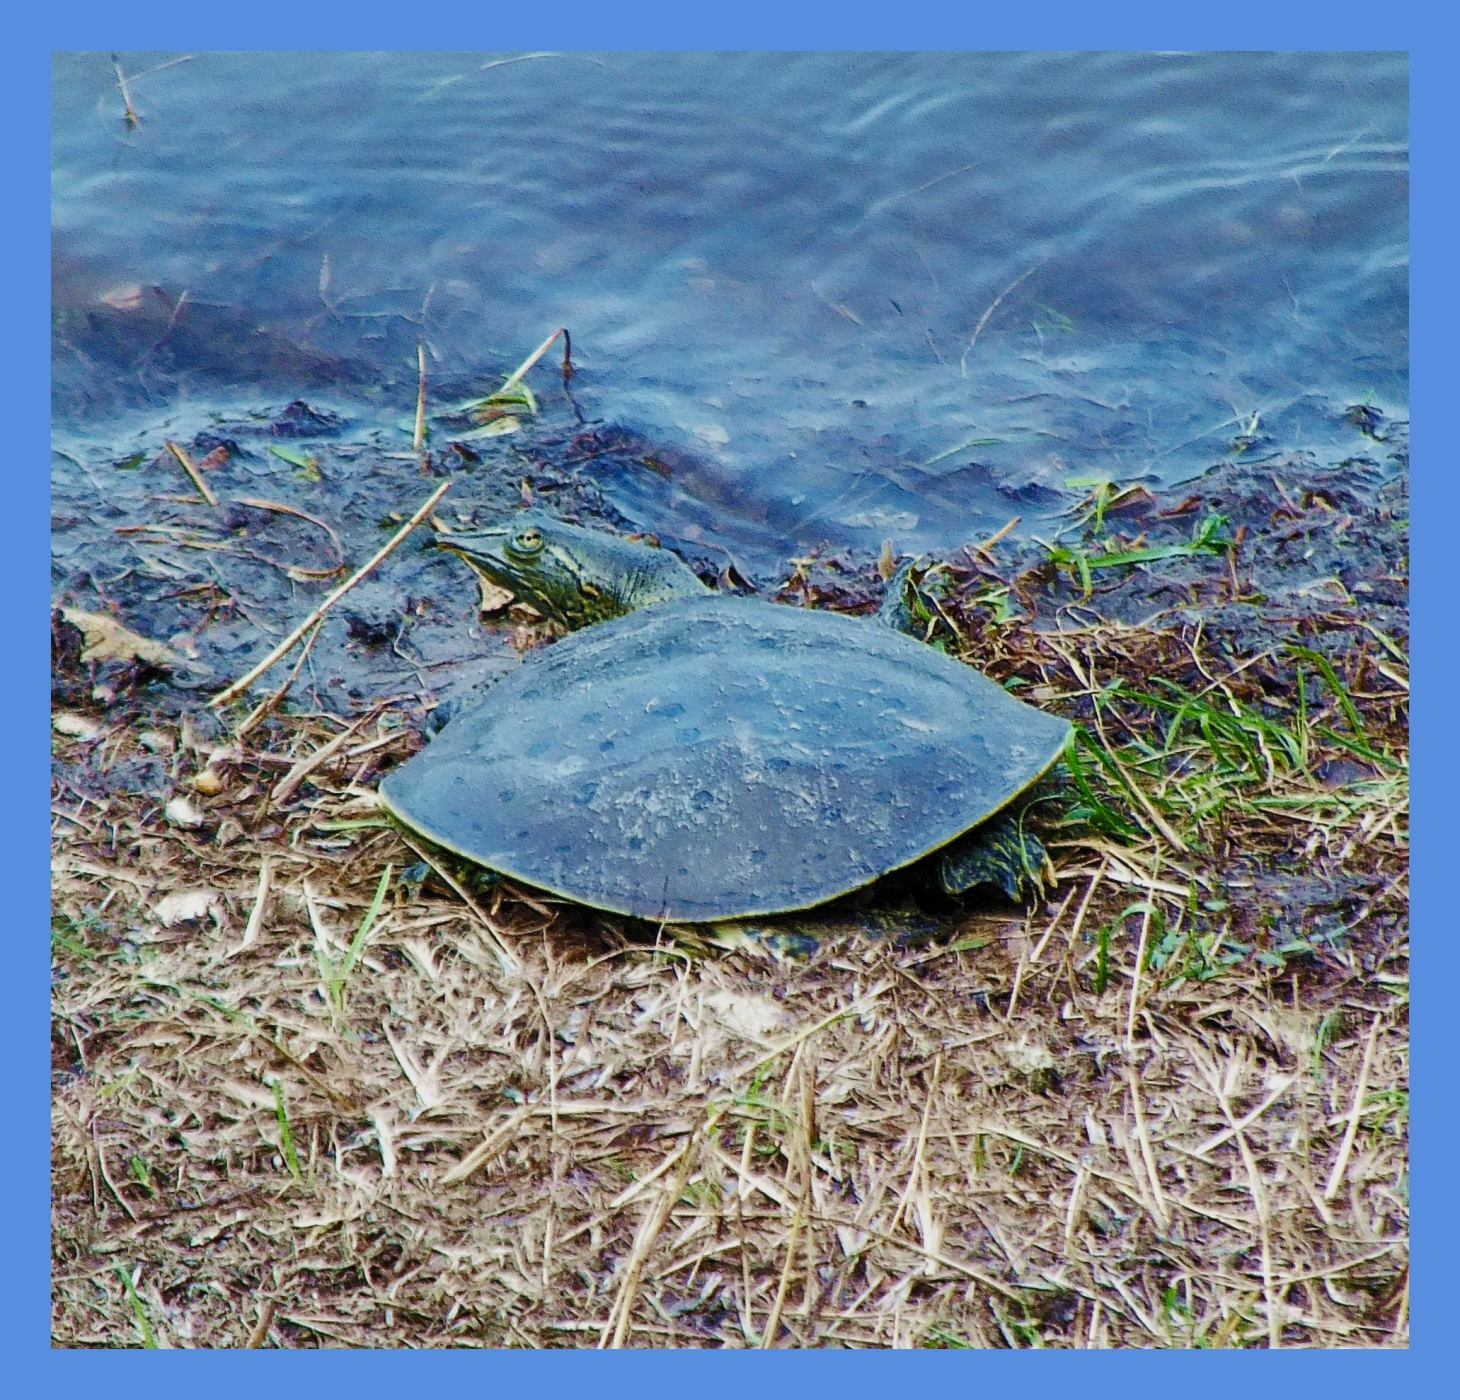 Softshelled Turtle. Photo by Thomas Peace c. 2015